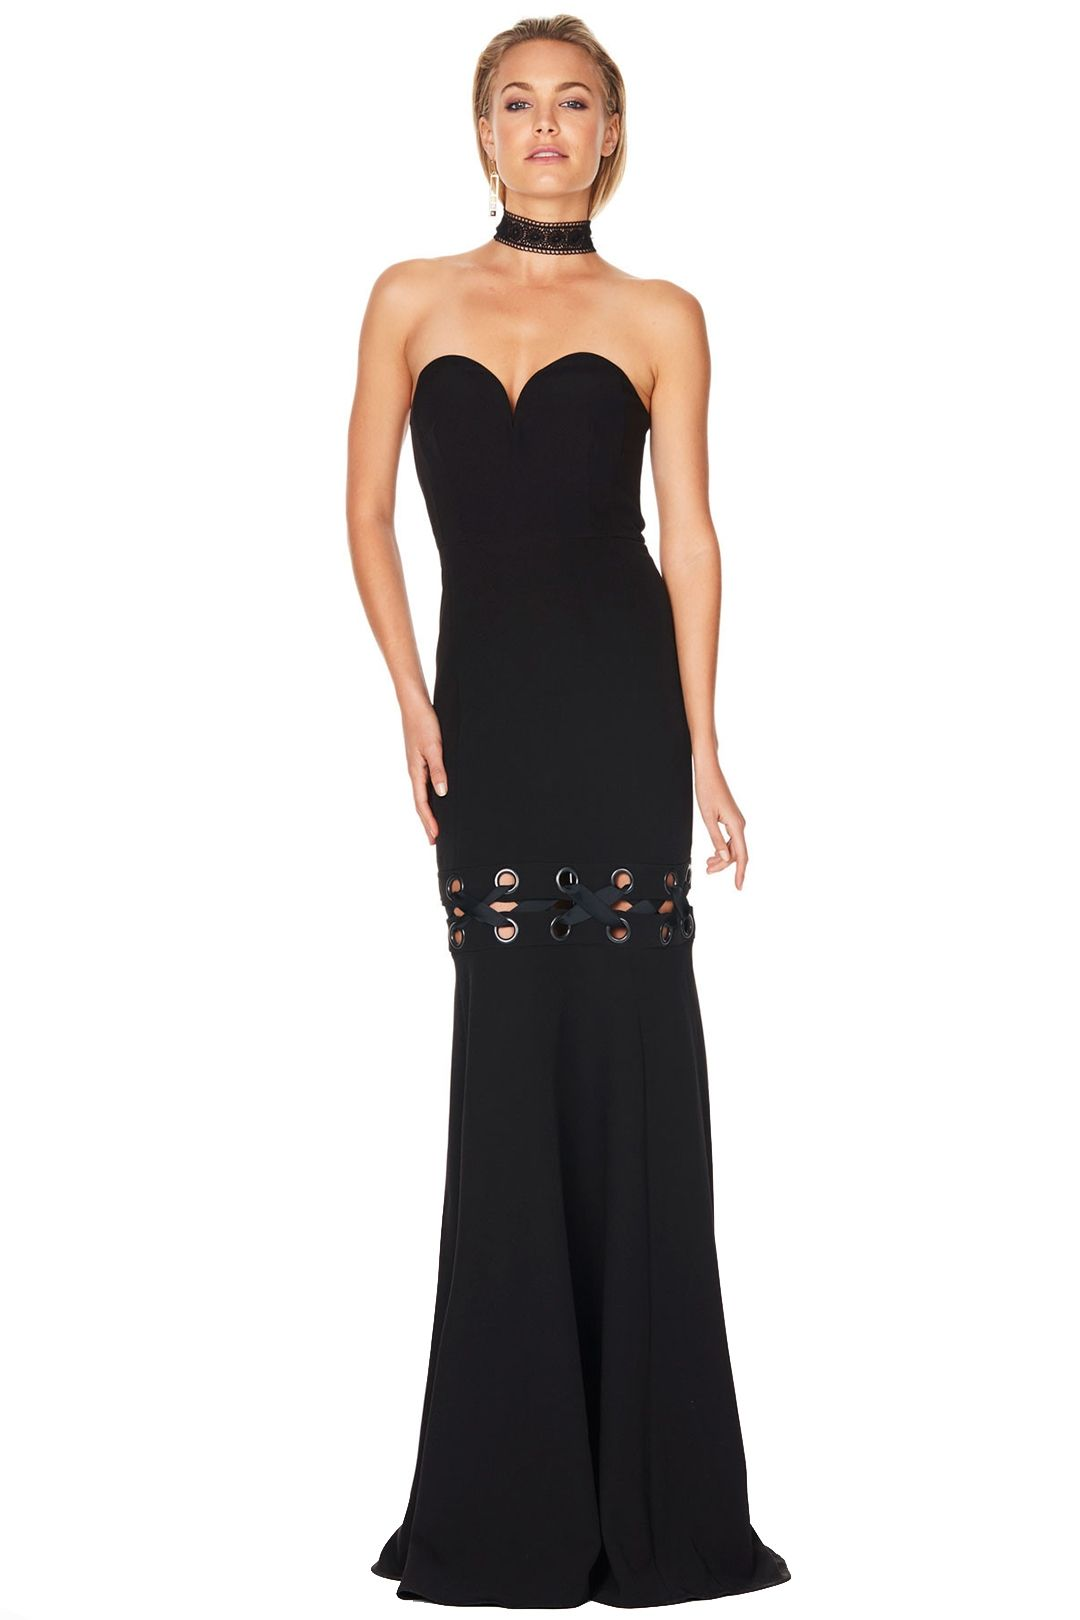 Talulah - Lace Me Gown - Black - Front